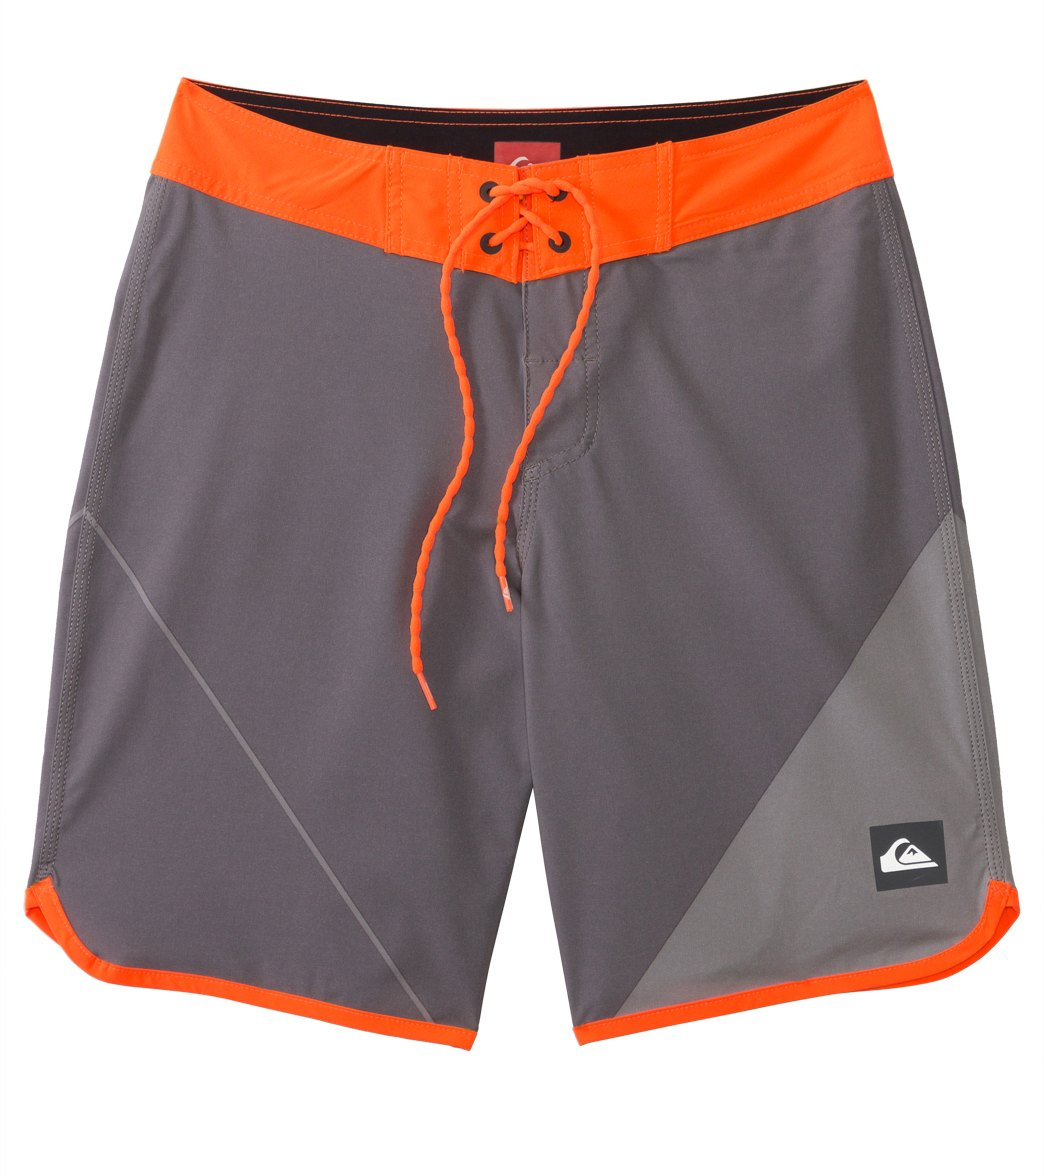 f311fa1d1a Quiksilver Men's AG47 New Wave Boardshort at SwimOutlet.com ...